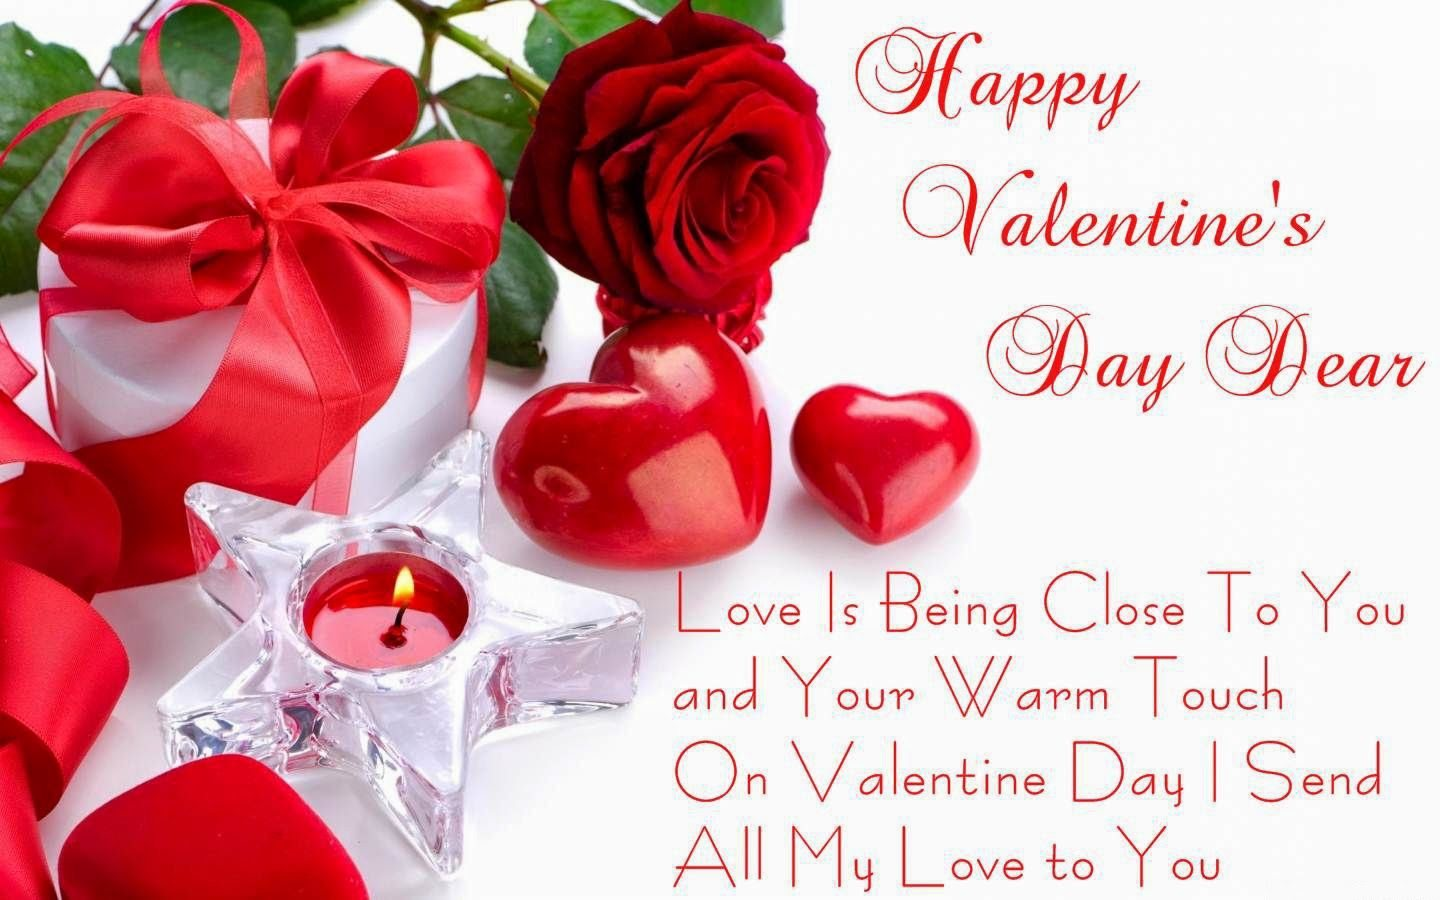 Happy Valentine's Day Funny Messages, Wishes, Love Quotes